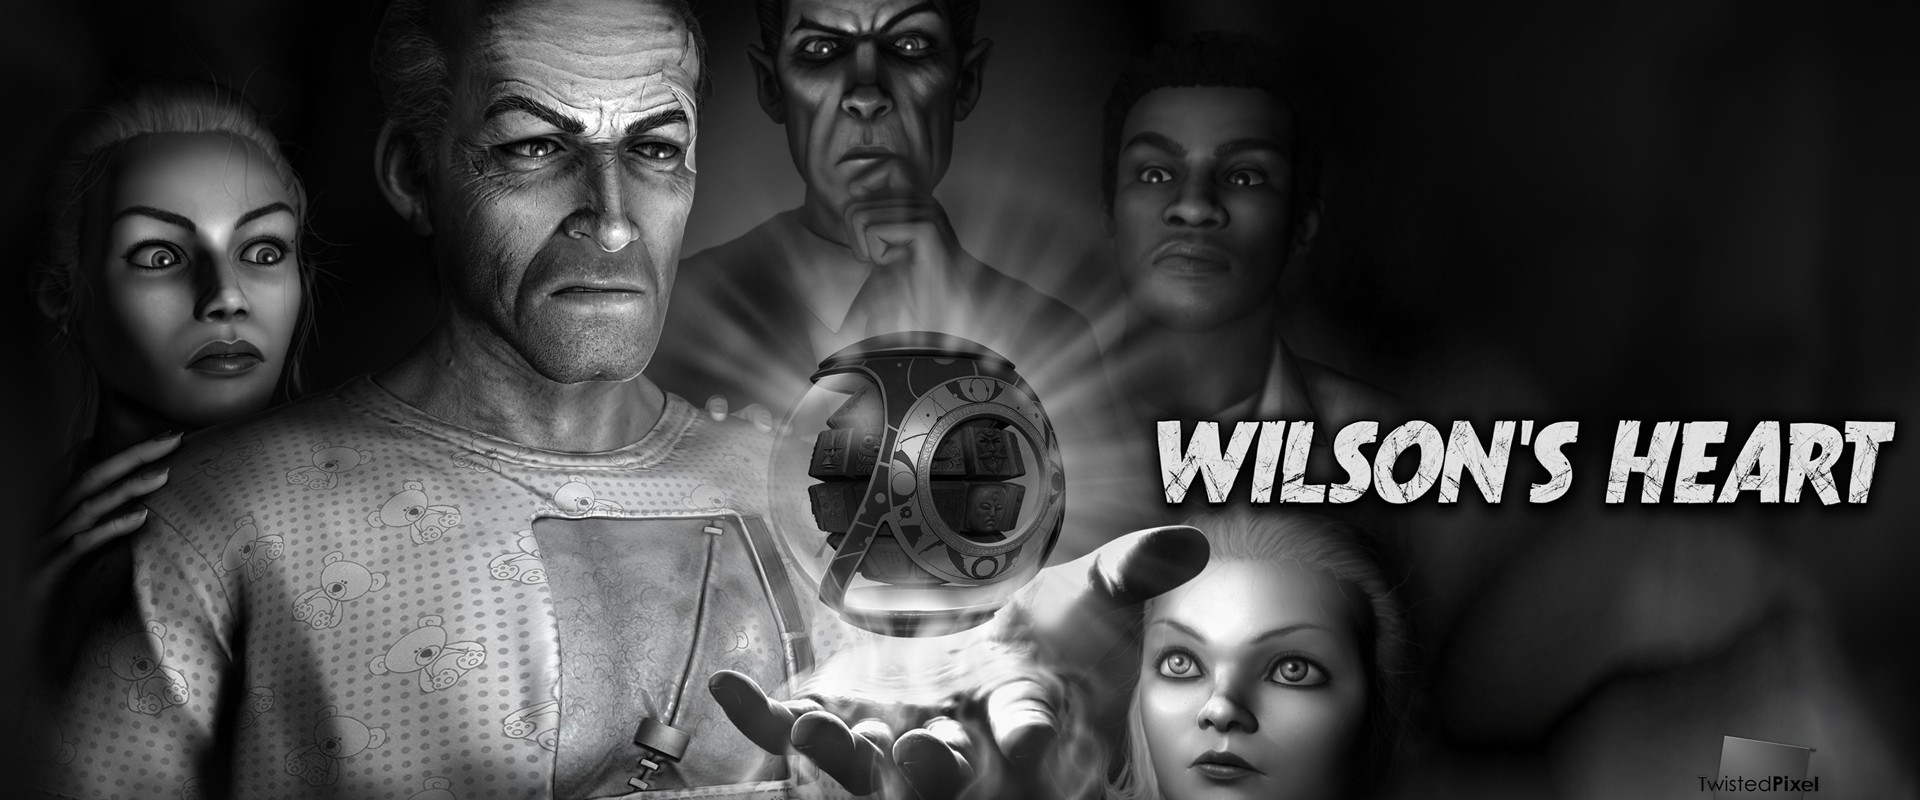 Step into the stylistic psychological thriller Wilson's Heart